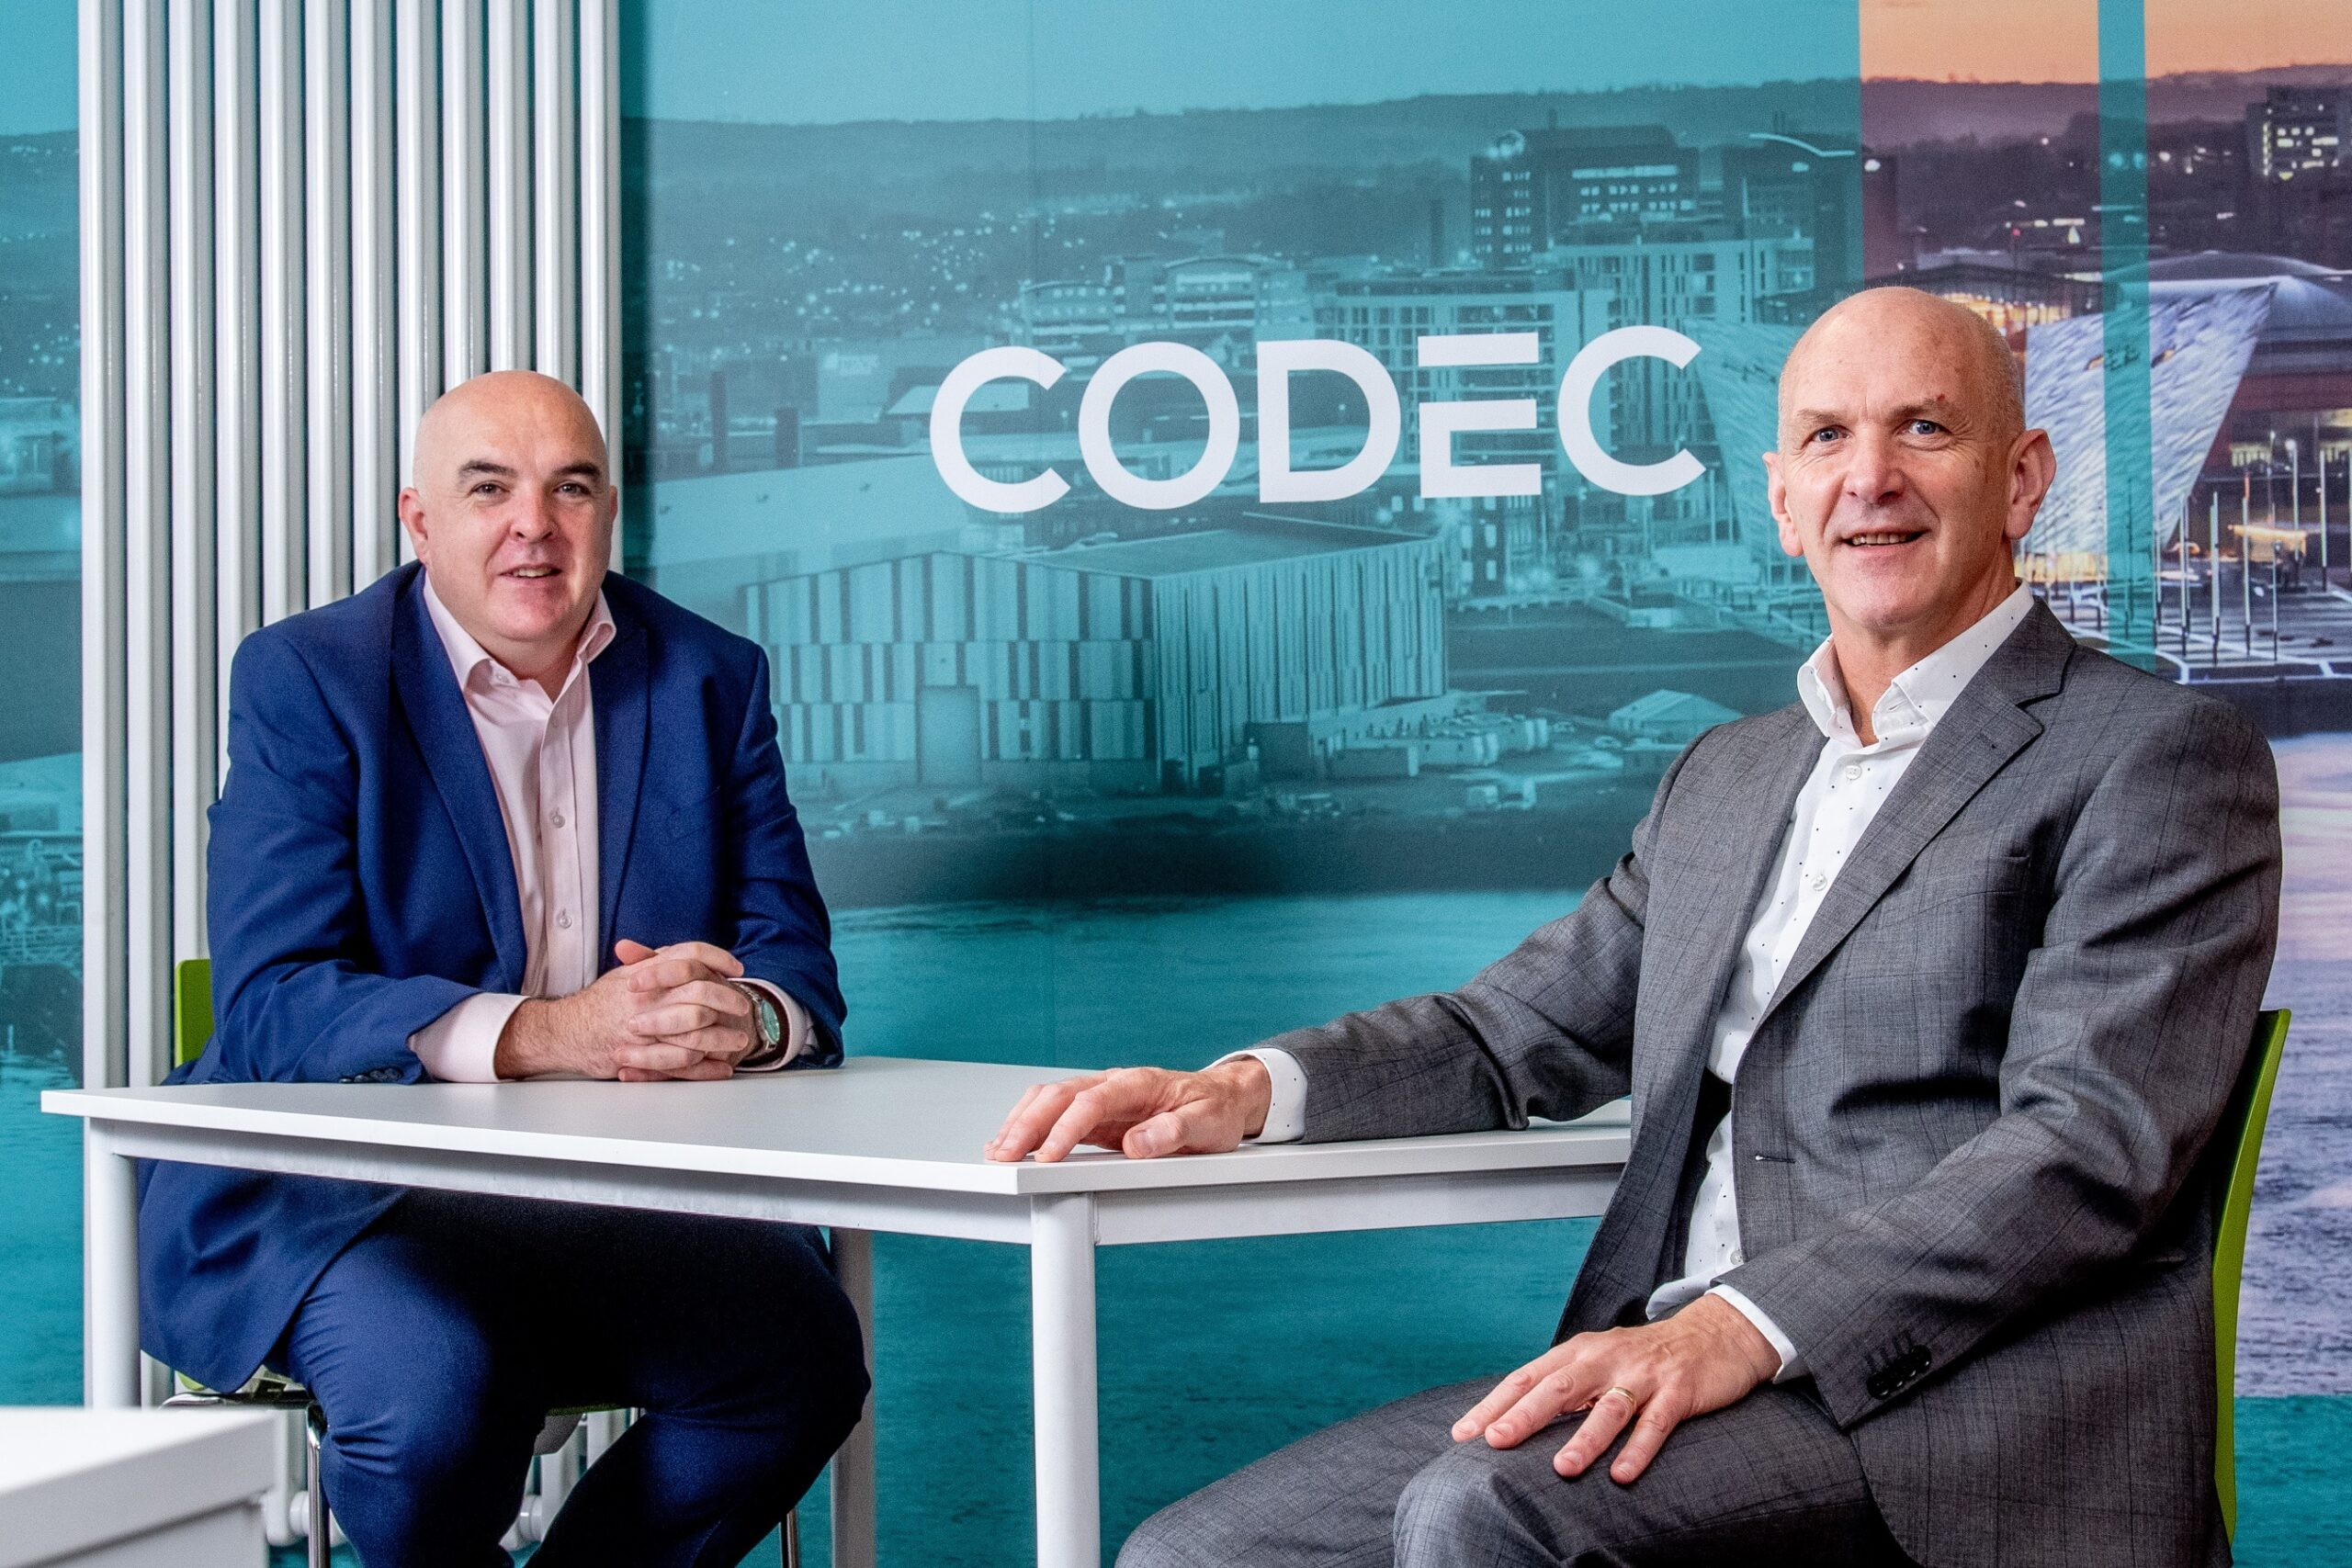 Dublin firm Codec invests over £1million in Belfast expansion and 20 jobs - Freelance NI Copywriter Paul Malone, Blog Writer, Content Writer